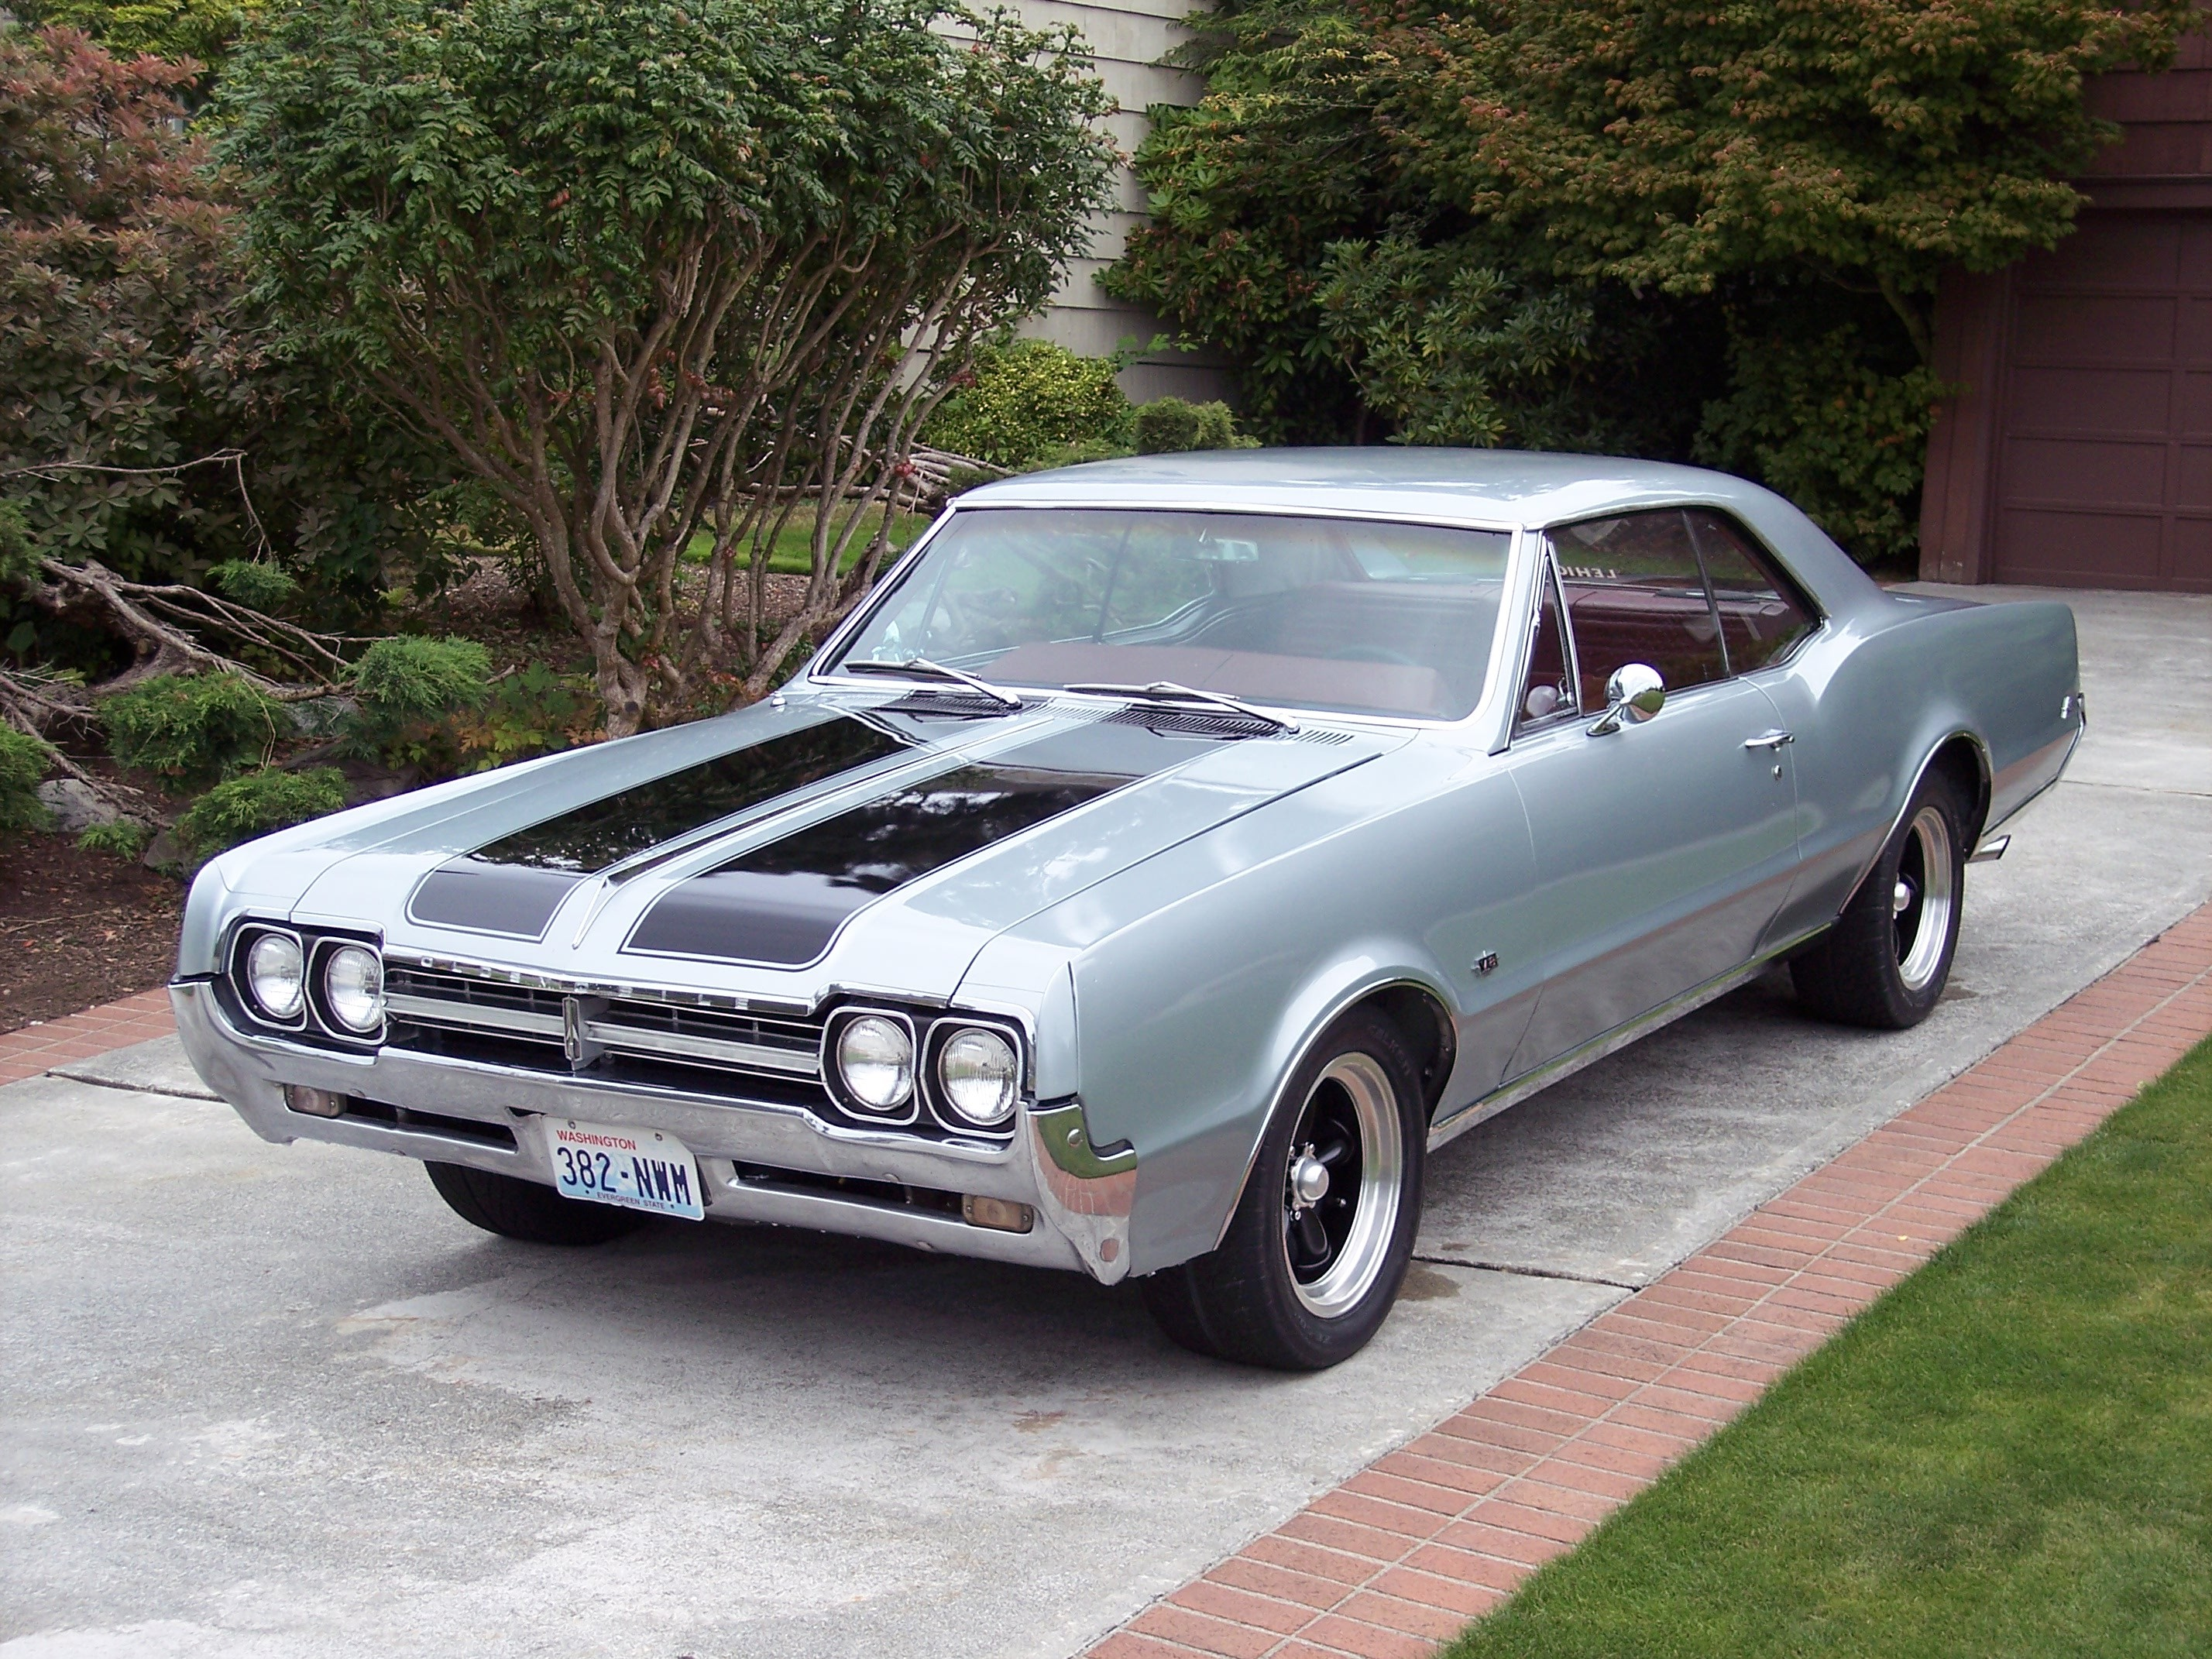 66Olds's 1966 Oldsmobile F-85